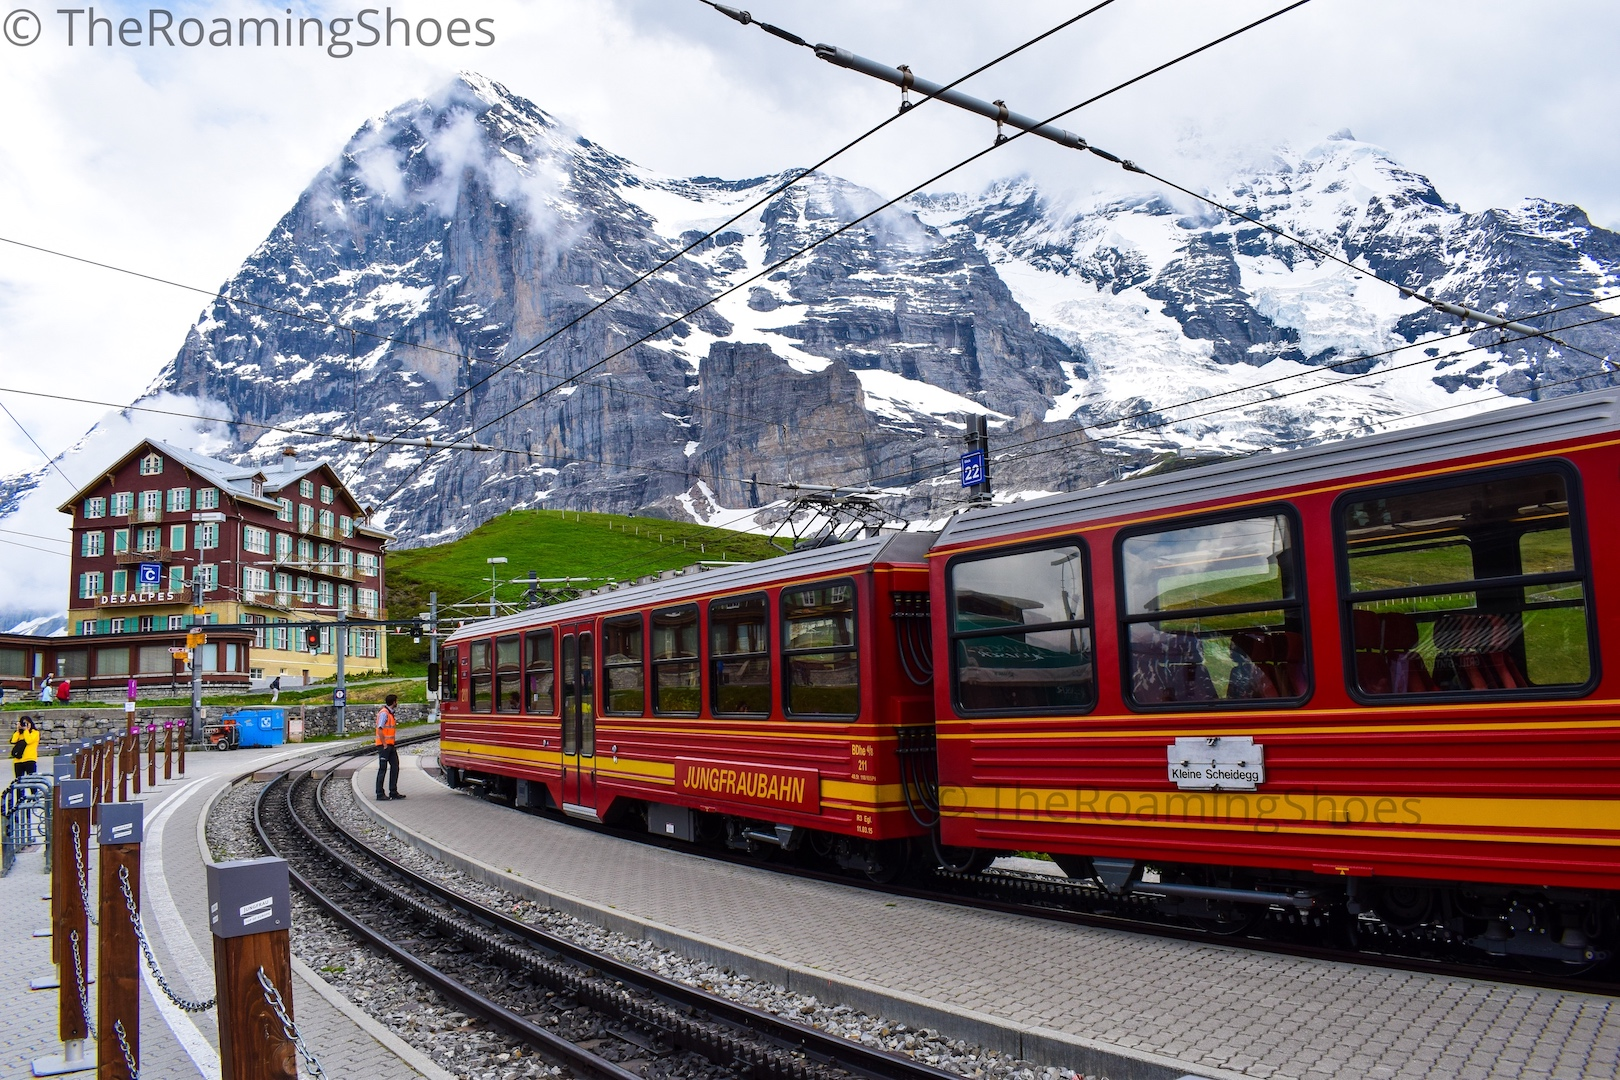 The train to Jungfraujoch